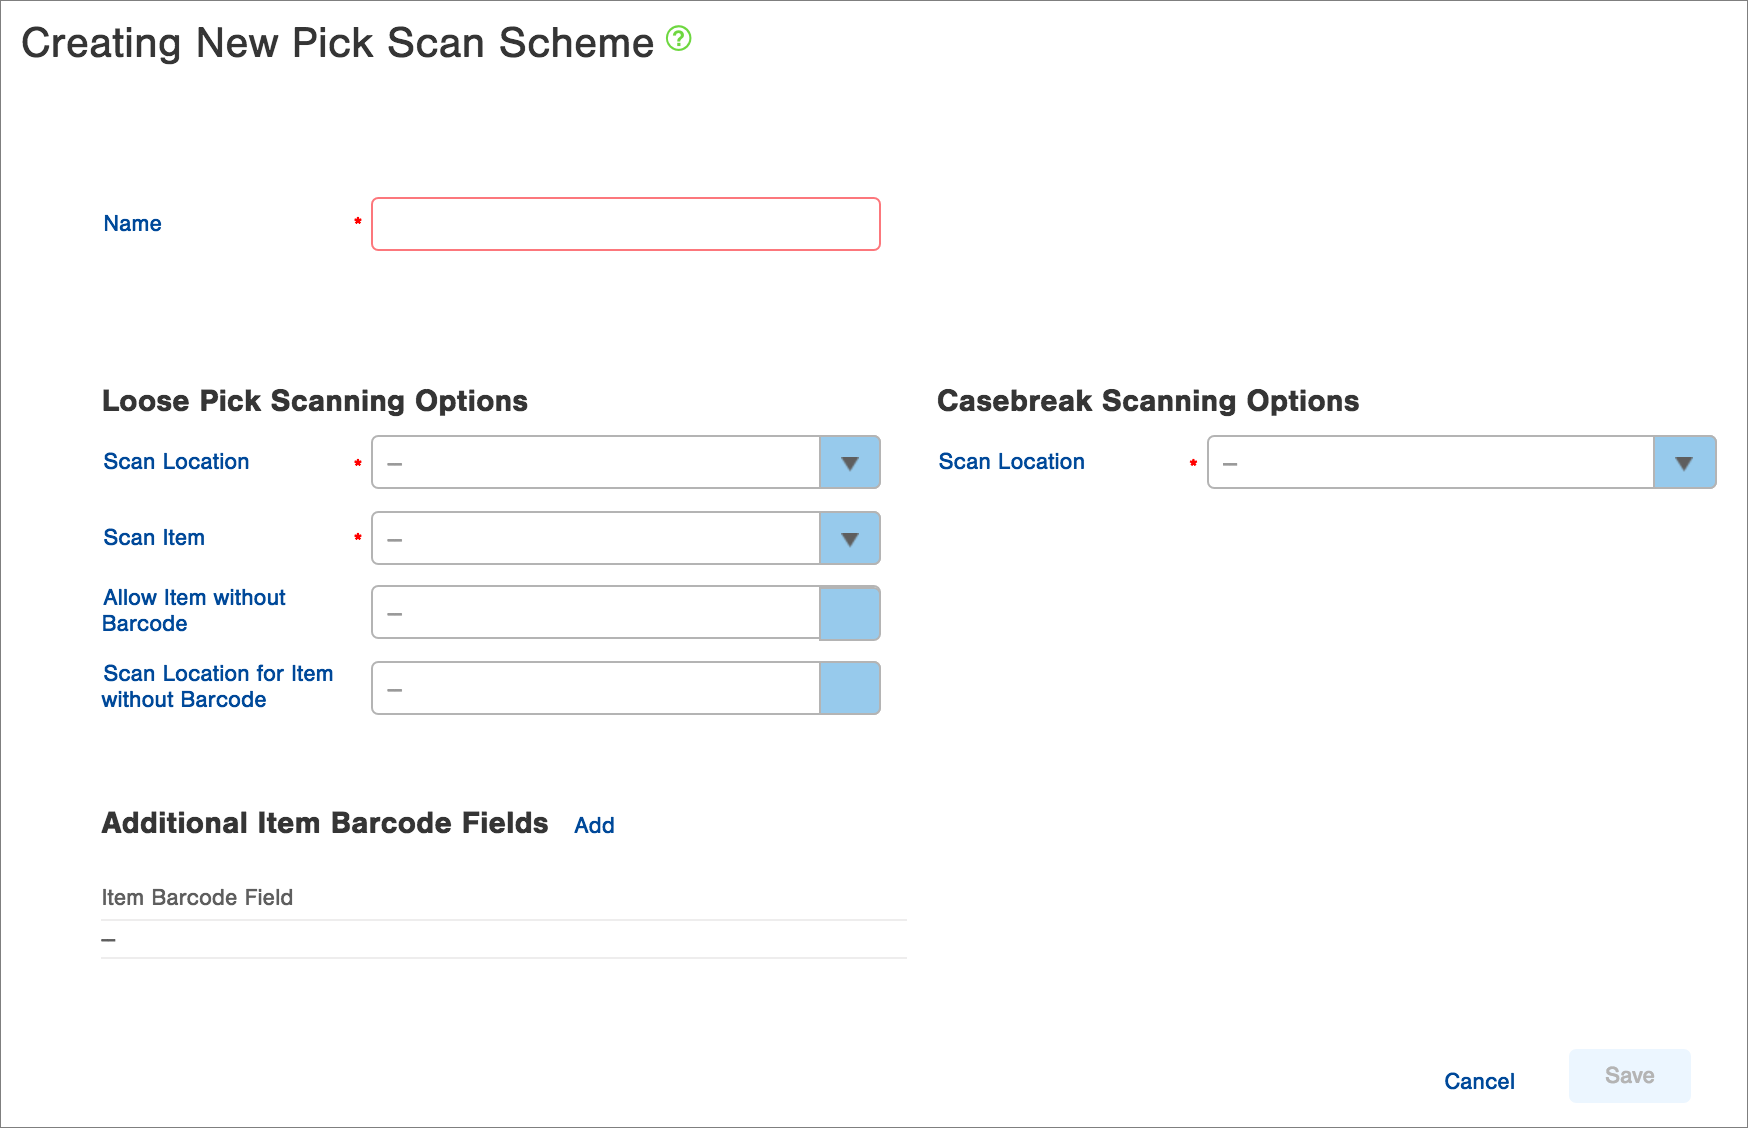 Custom pick scanning schemes can be set up